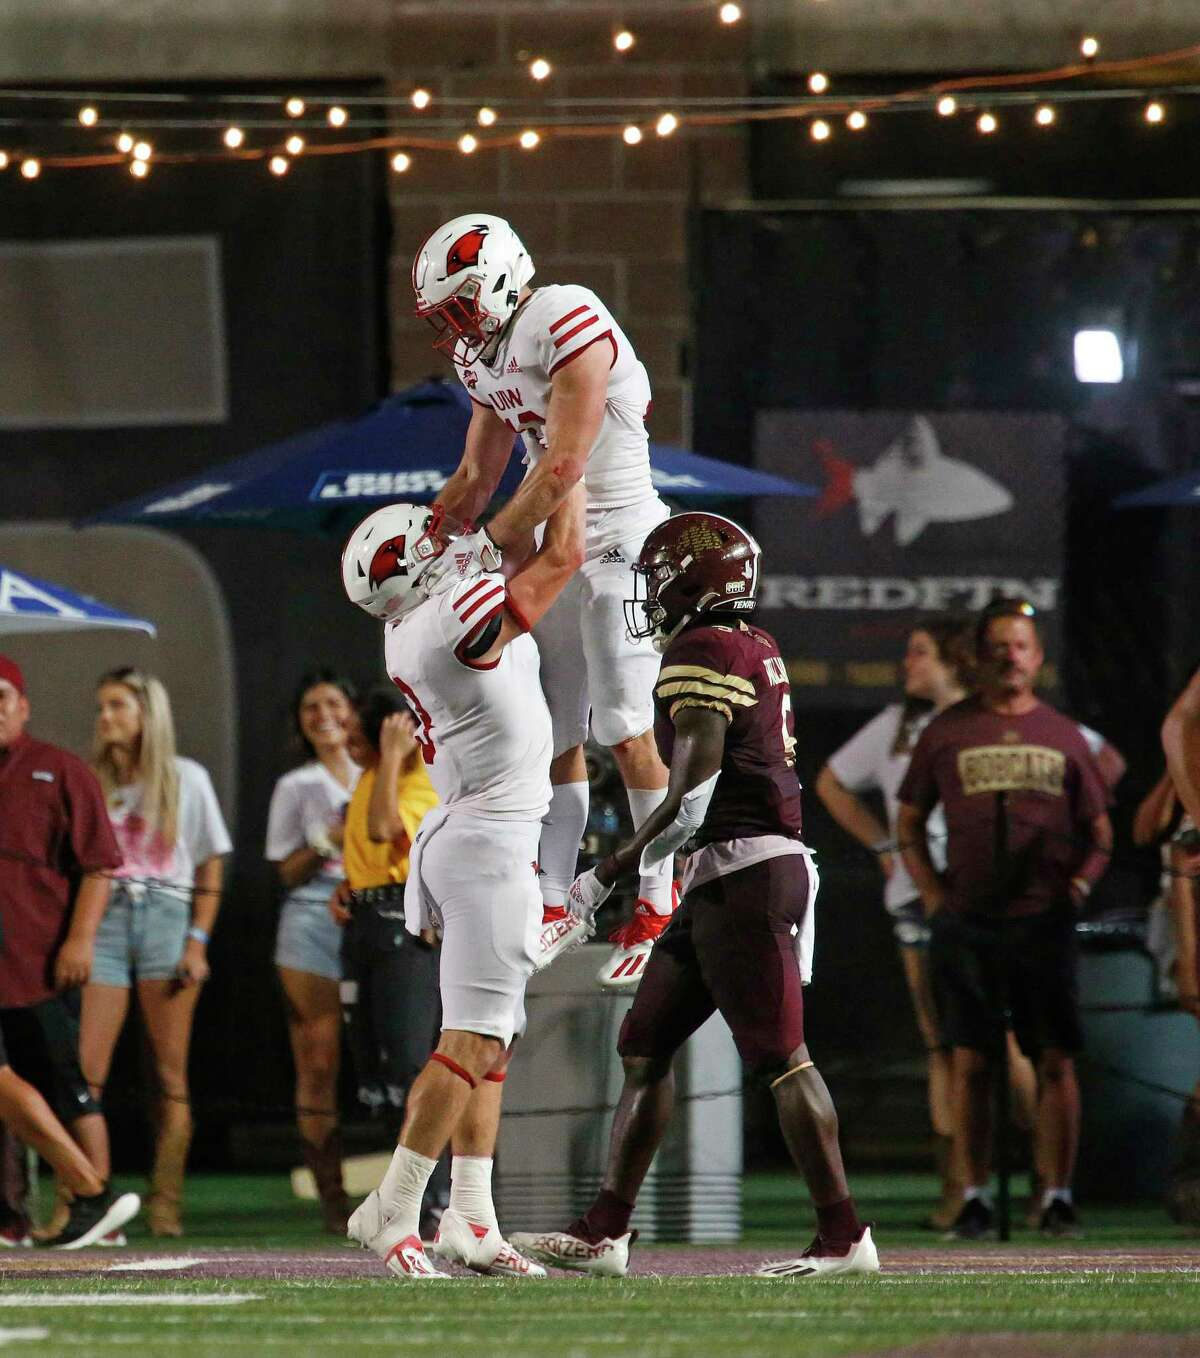 UIW's Taylor Grimes, center, was the Cardinals' second-leading receiver with 11 catches for 113 yards and a touchdown in UIW's win over Texas State, its first win over an FBS team.